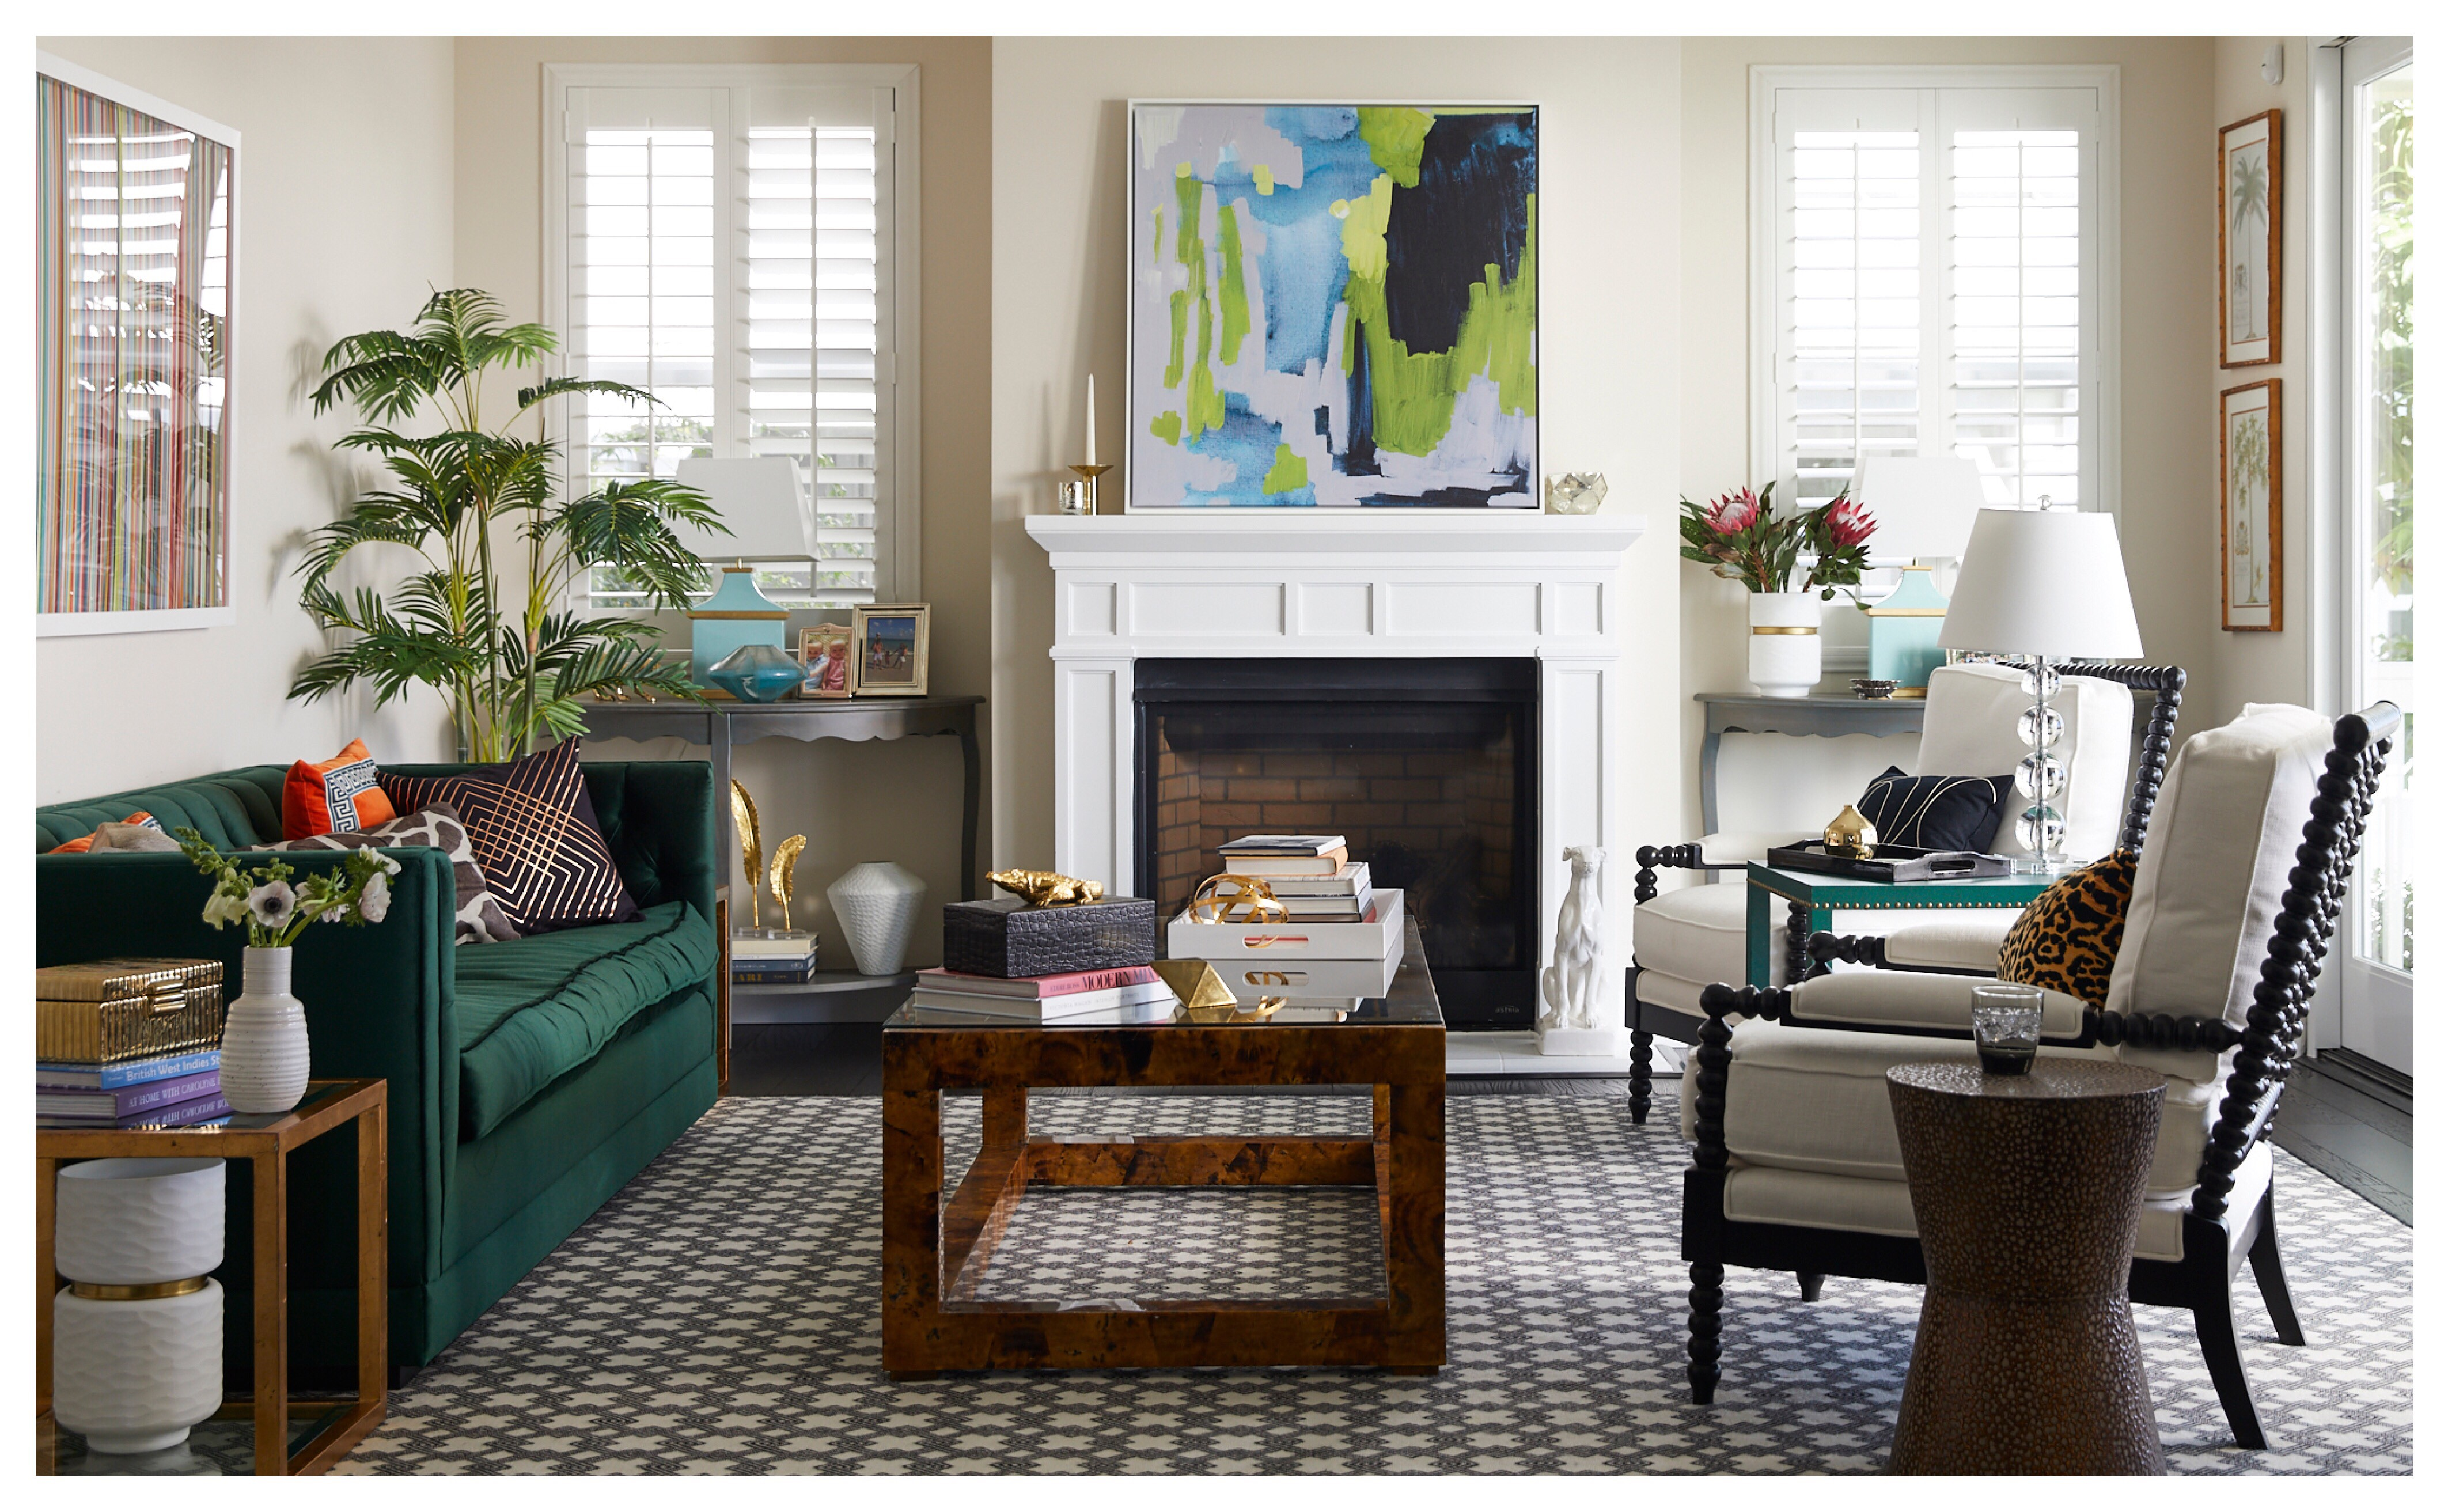 A living room decorated with an Art.com framed canvas